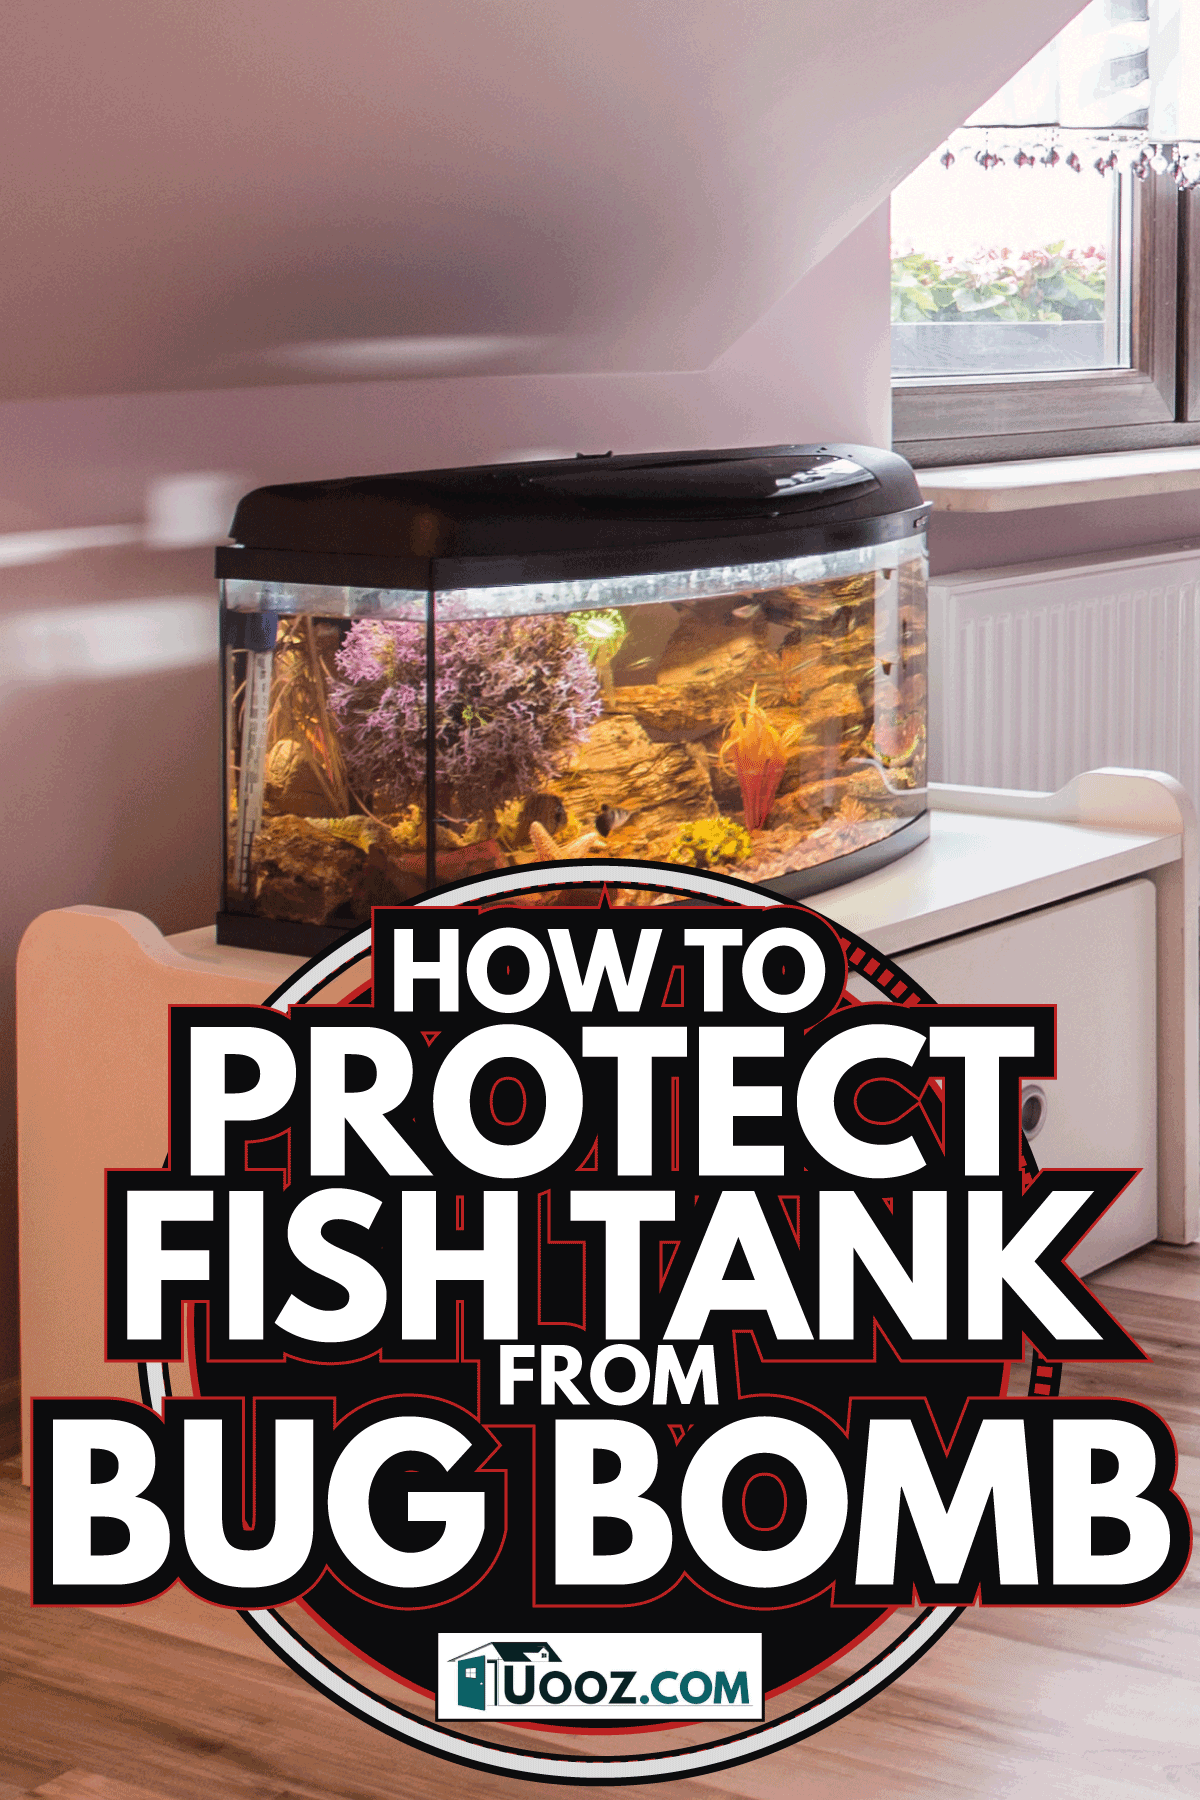 Cozy room for teenage gir with fish tank beside the window. How To Protect Fish Tank From Bug Bomb